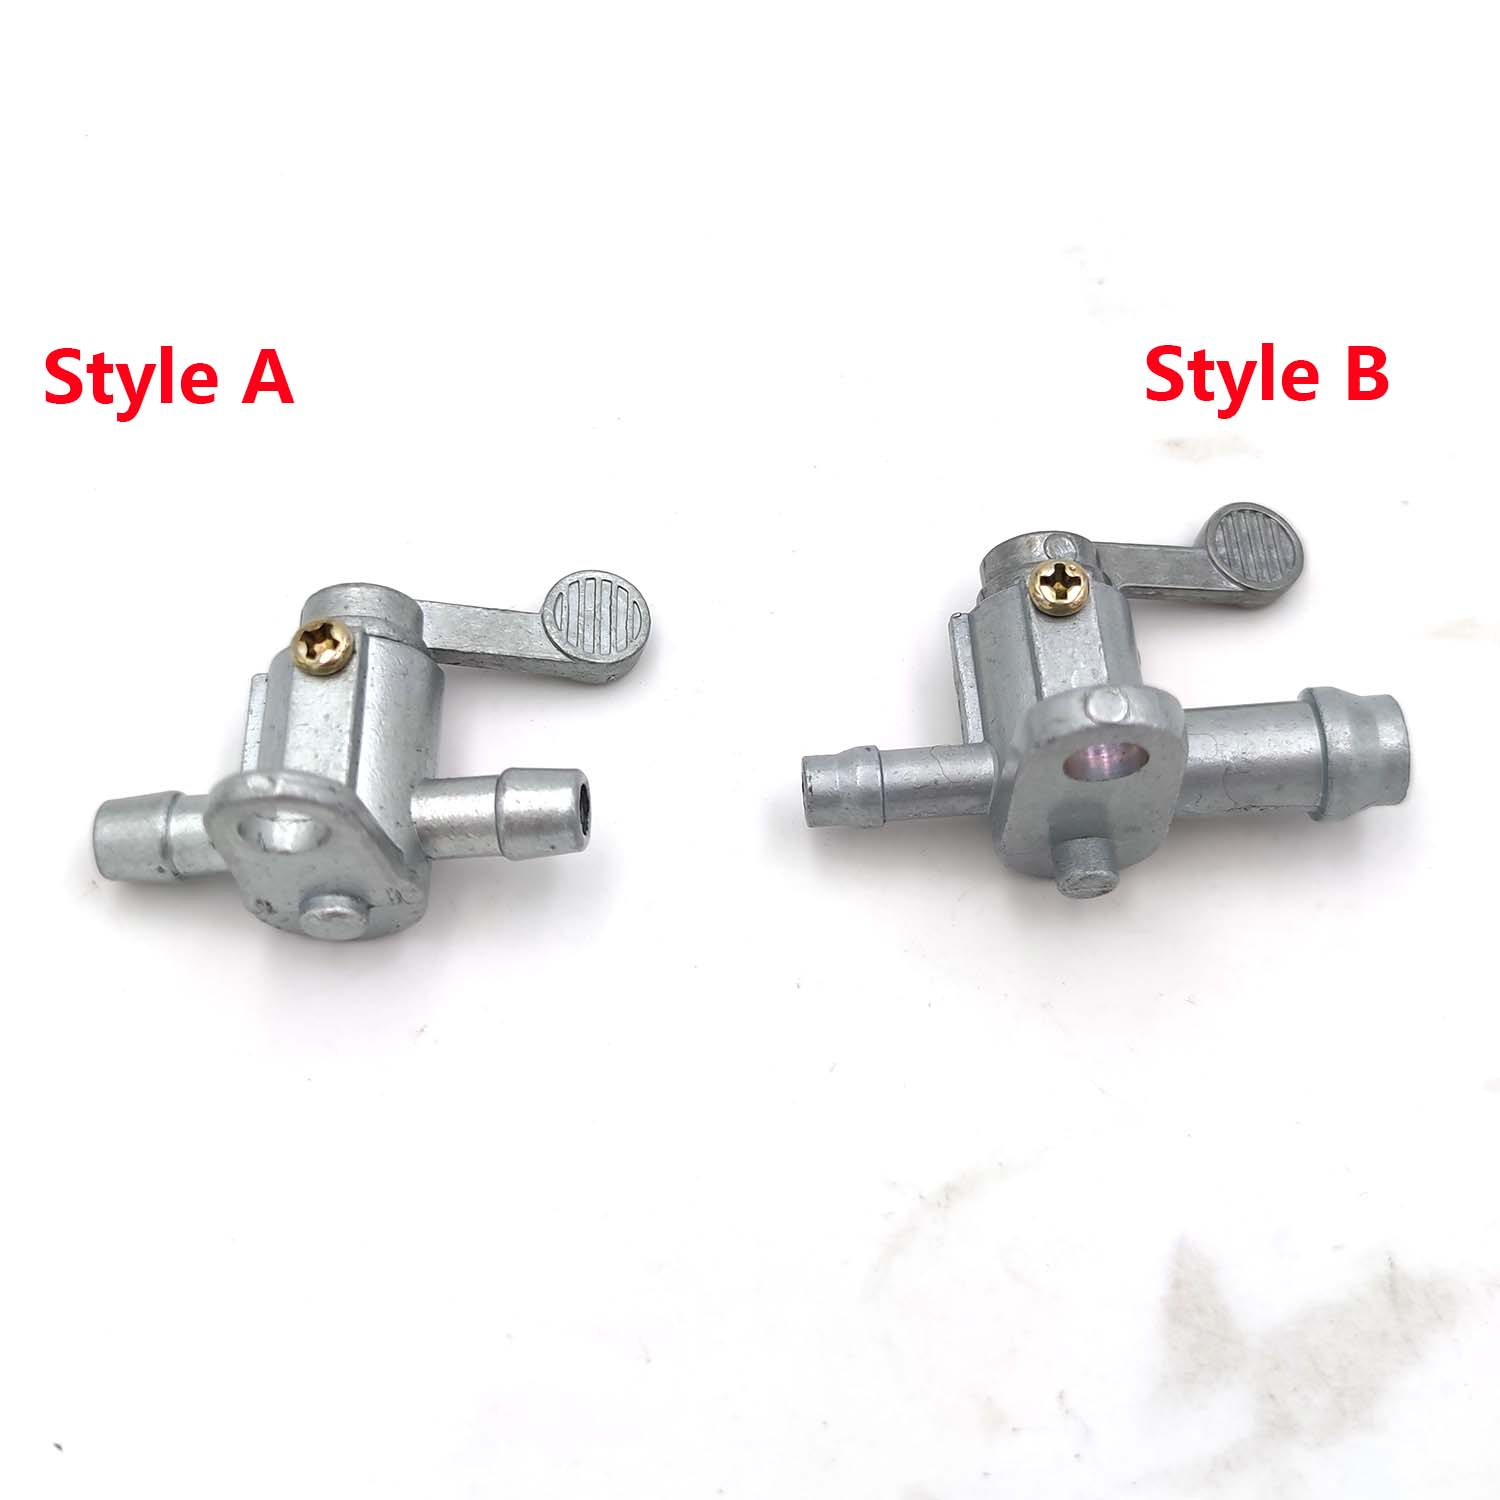 Universal Plastic Shut Off 1//4 Inline On//Off Fuel Switch Tap for Briggs /& Stratton Moto Pit Motorized Bike with 6mm Pipe Hose Motorcycle Fuel Valve Petcock Fuel Tank Tap